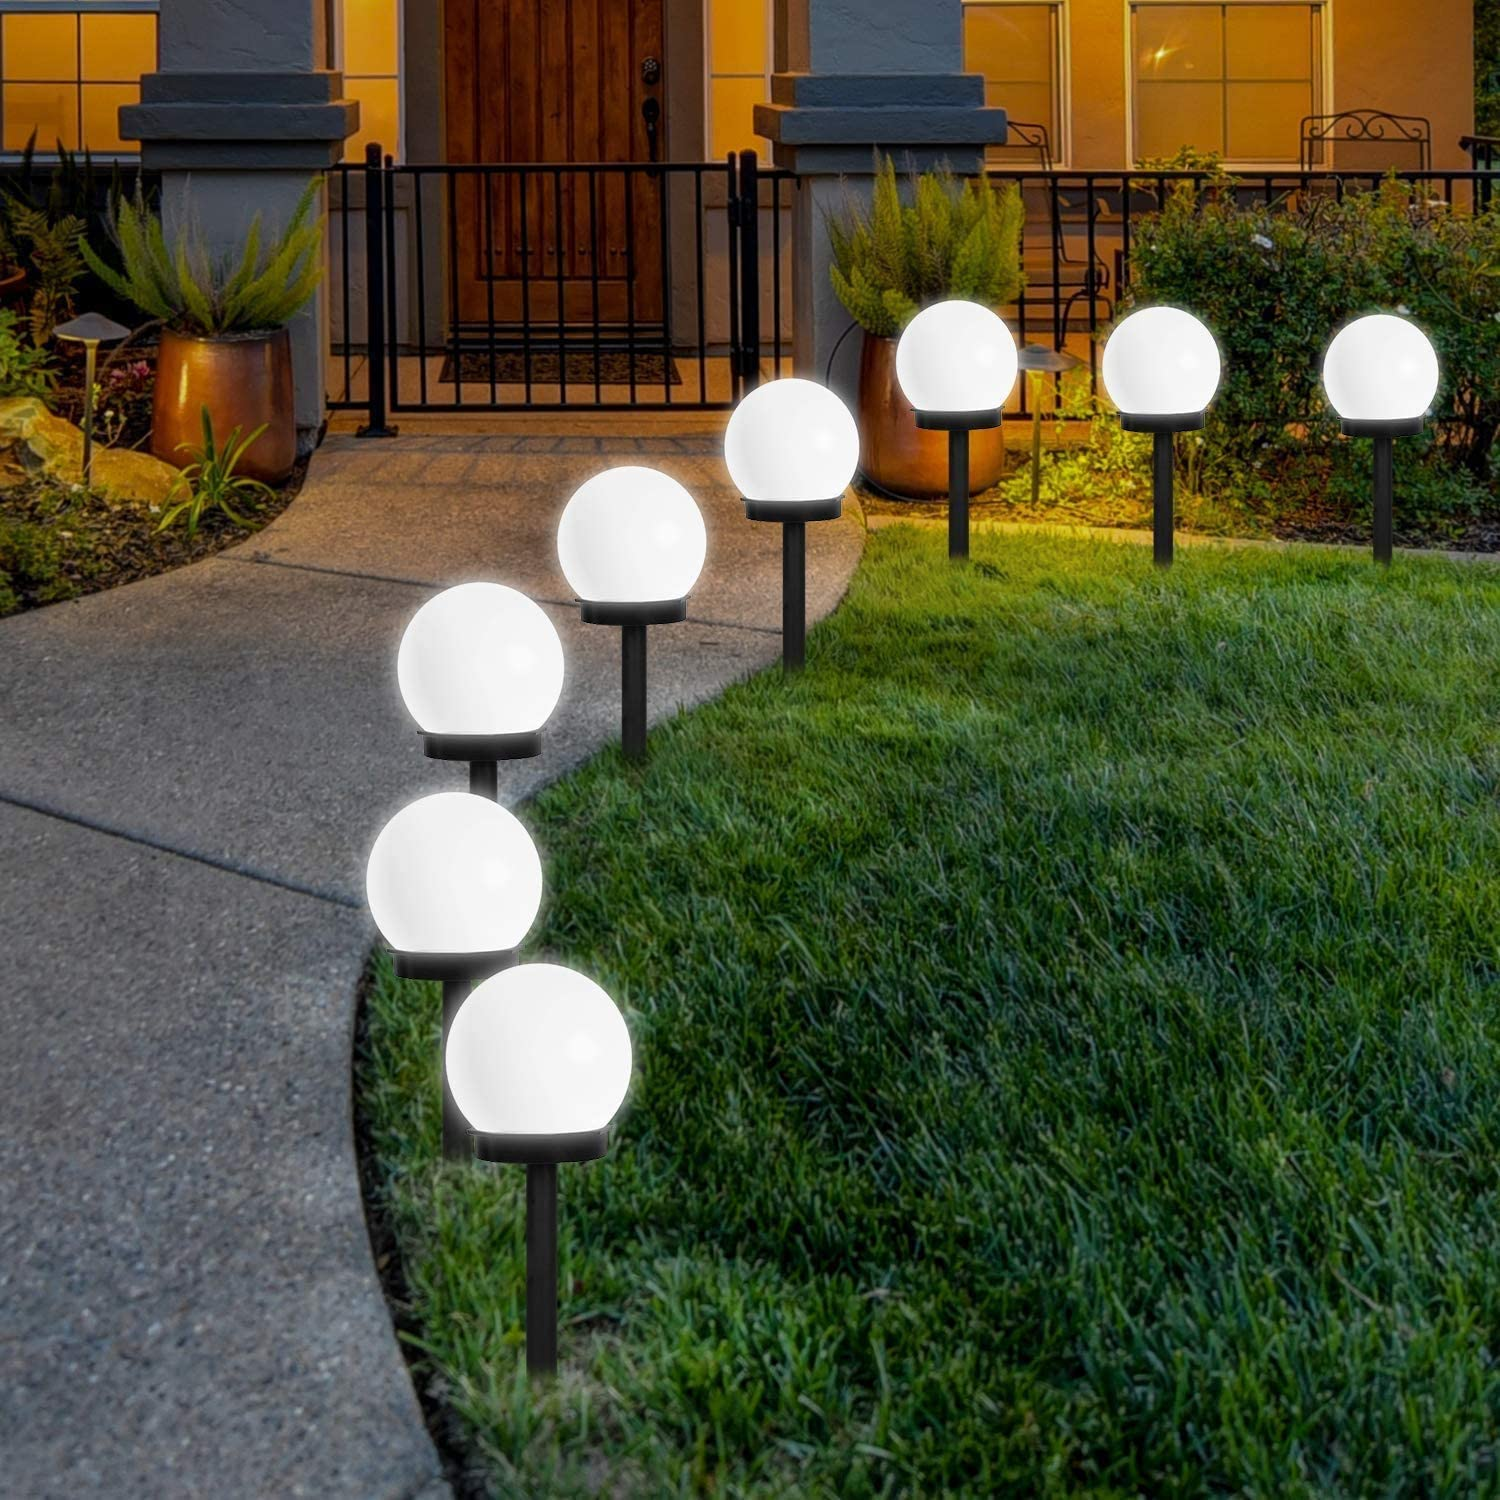 Amazon Com Incx Solar Lights Outdoor 8 Pack Led Solar Globe Powered Garden Light Waterproof For Yard Patio Walkway Landscape In Ground Spike Pathway Cool White Home Improvement